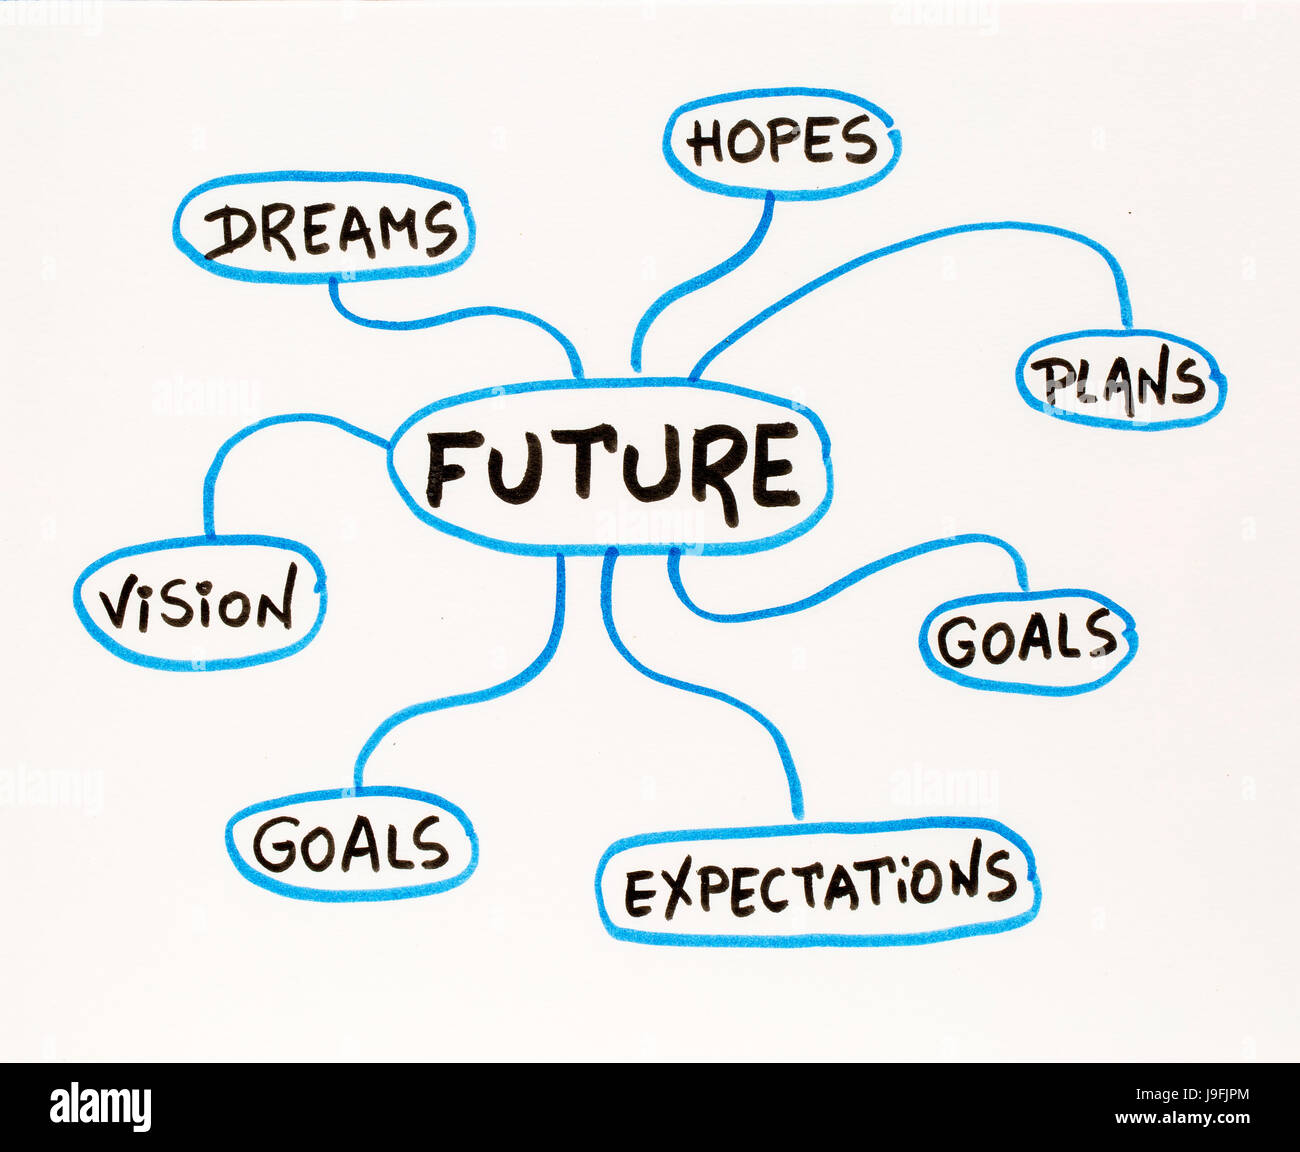 what are your hopes and dreams for the future essay When we asked people about their hopes and goals for the future, there was a  very diverse range of responses the most common aspirations for the future.